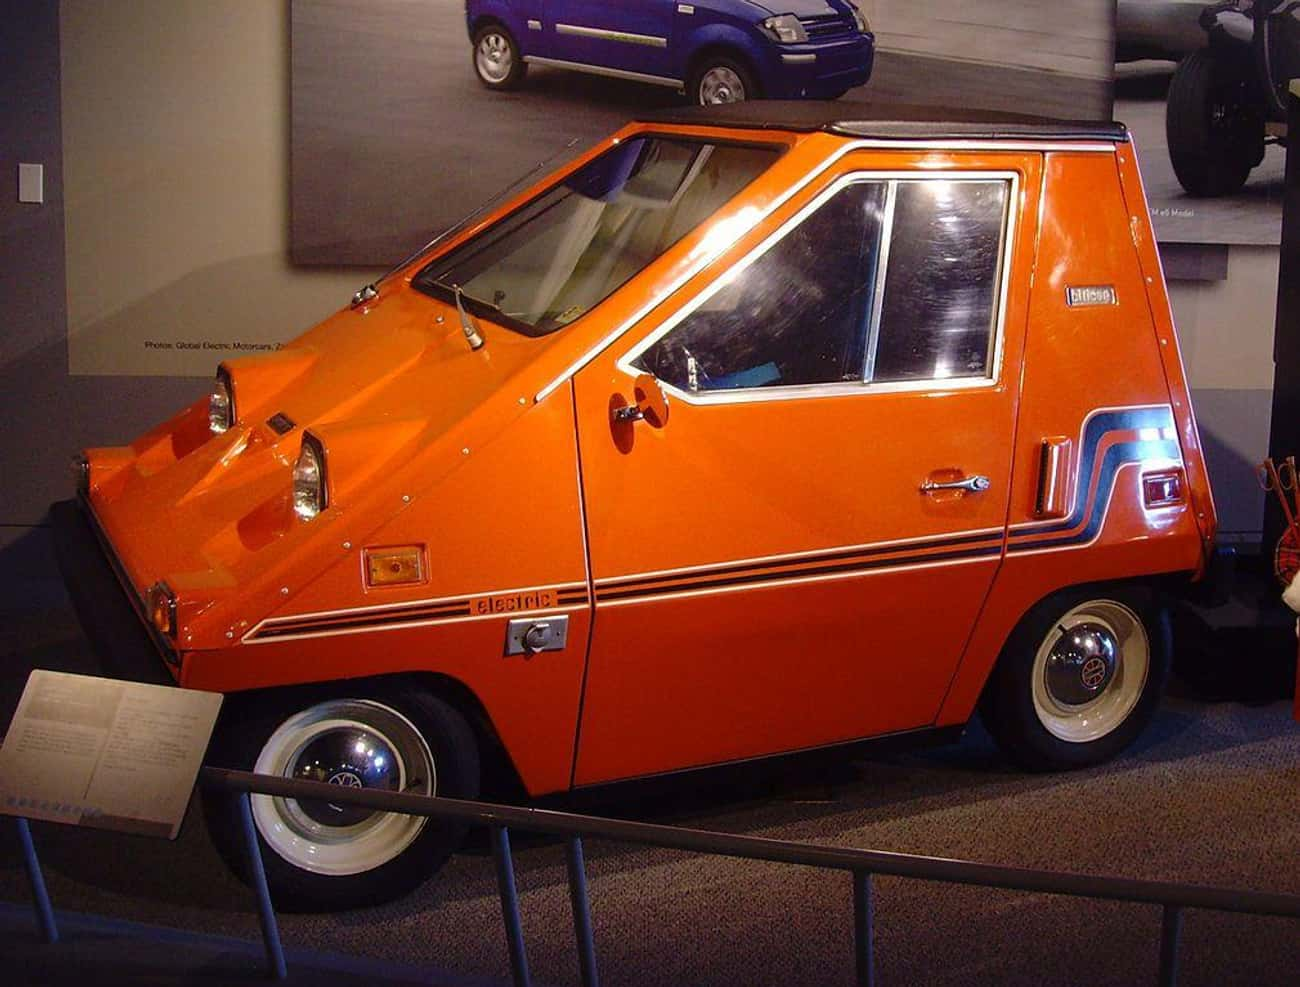 Sebring-Vanguard CitiCar is listed (or ranked) 3 on the list The Ugliest Cars In The World